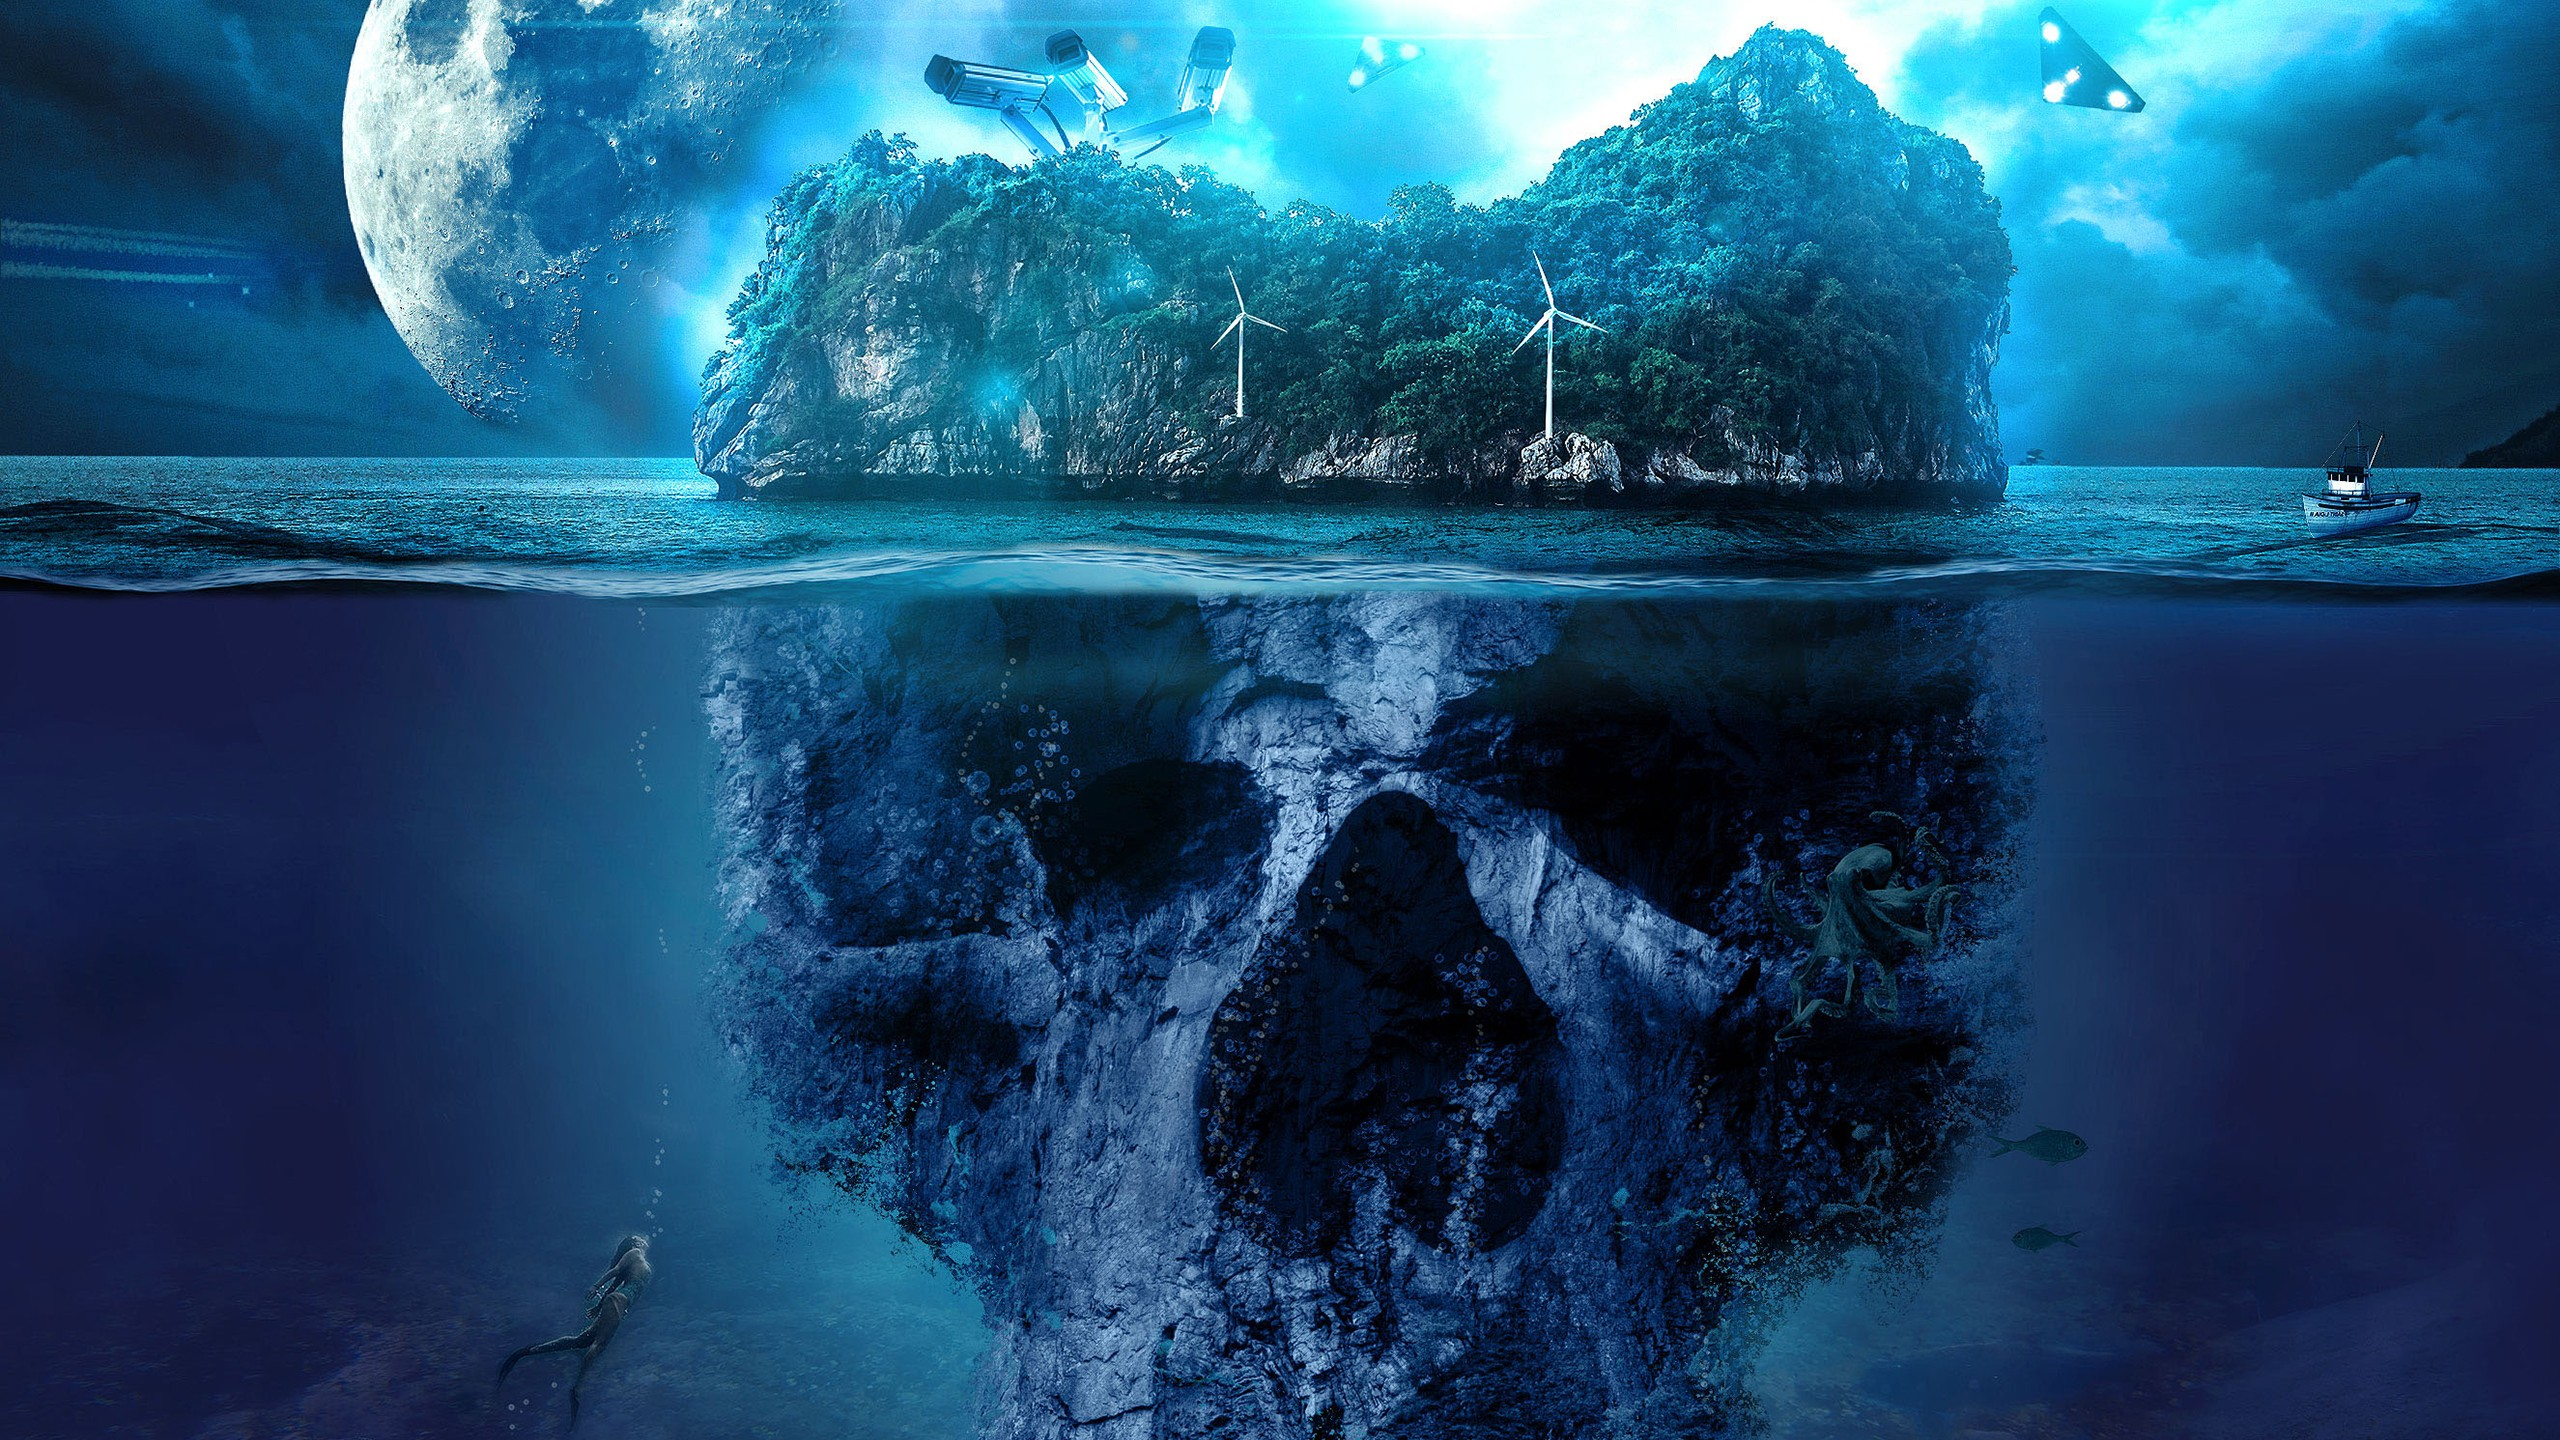 Iphone 5 Space Wallpaper Hd Mystery Skull Island Wallpapers Hd Wallpapers Id 27263